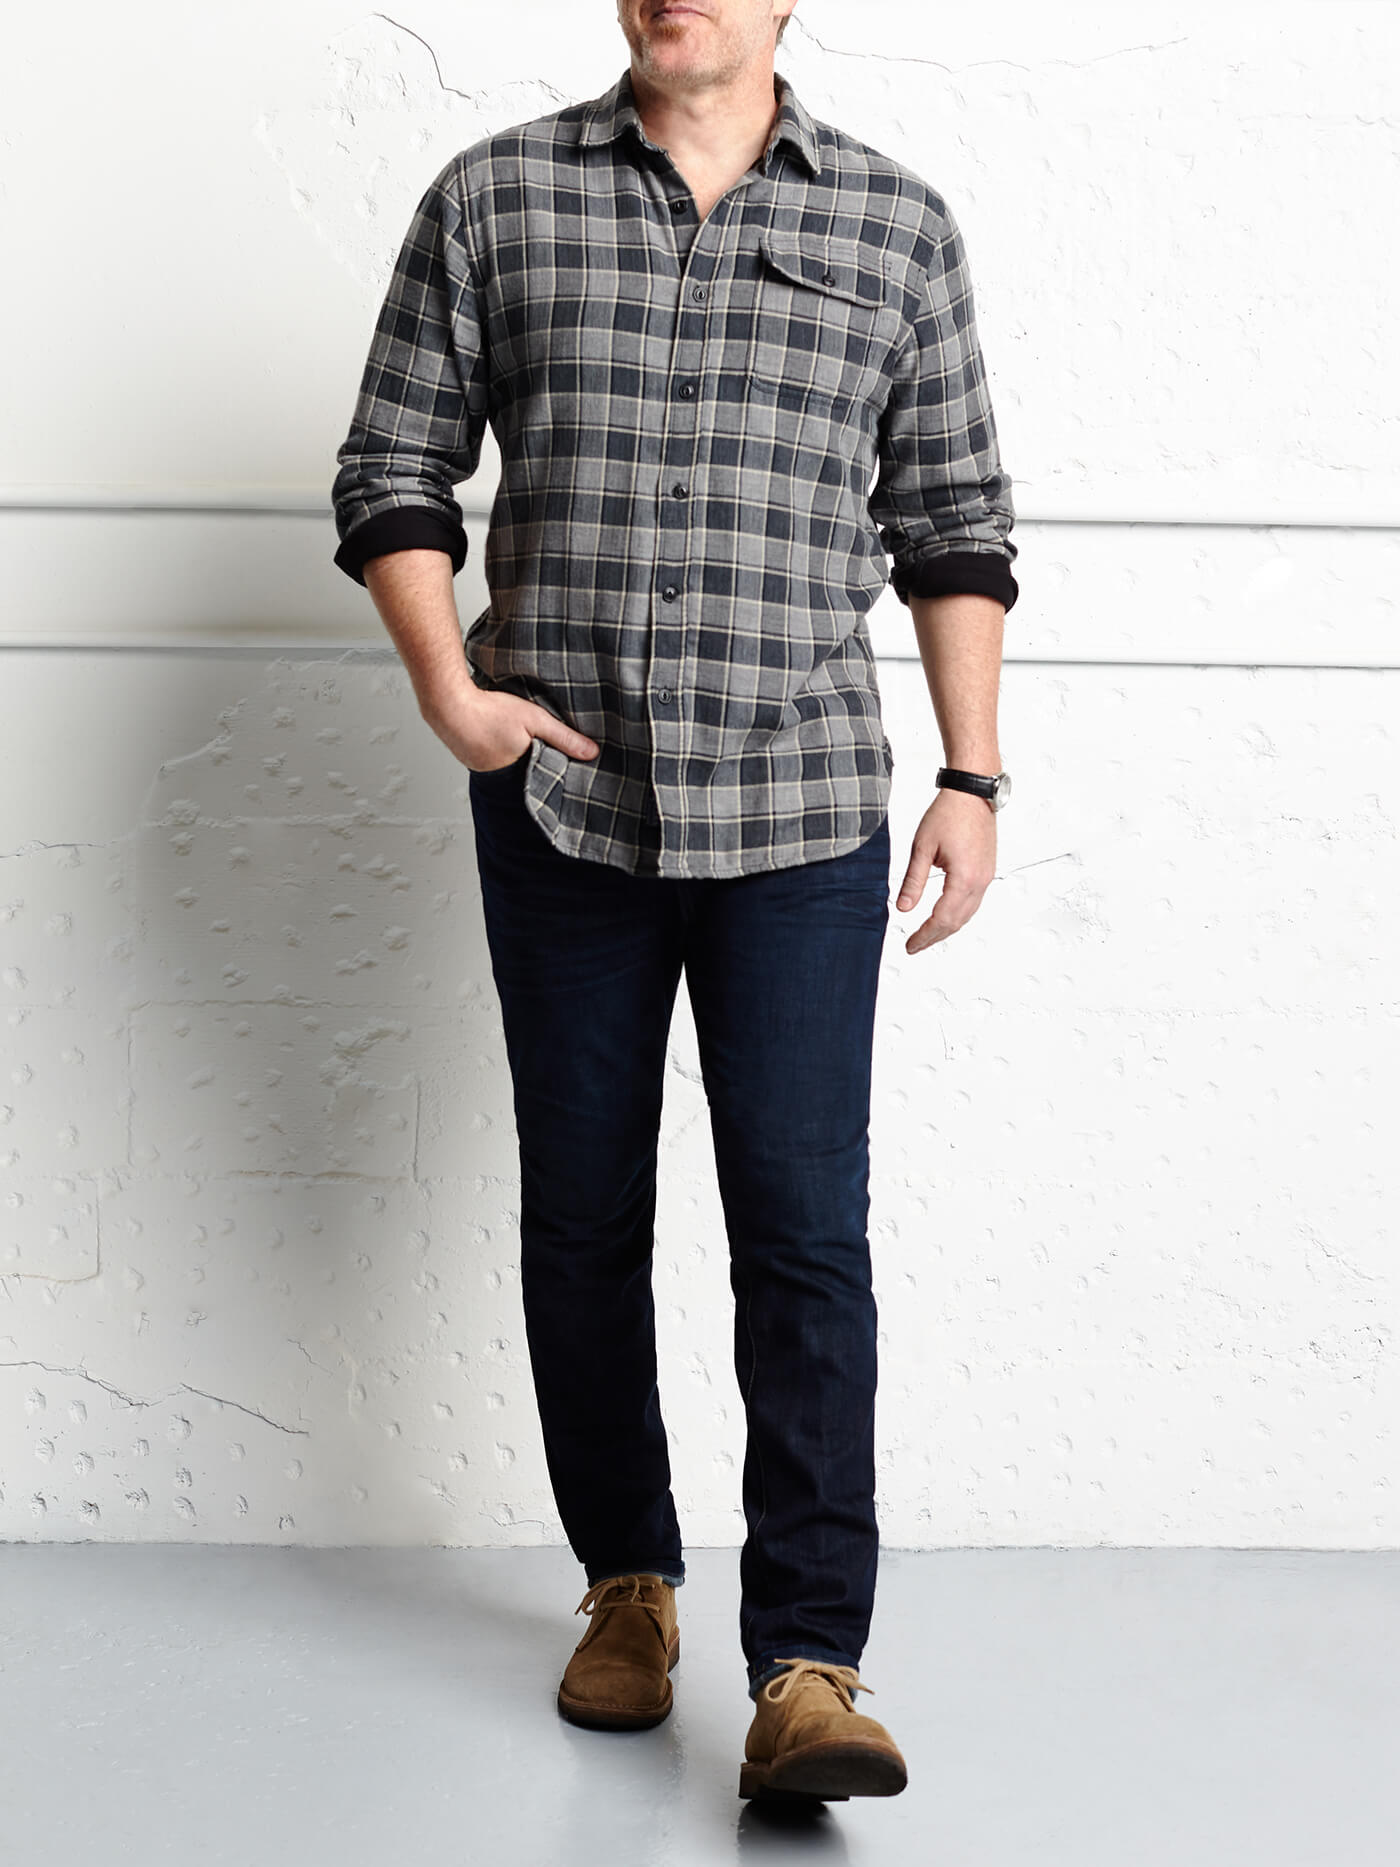 a21a884bf39 Can older guys wear slim pants and jeans